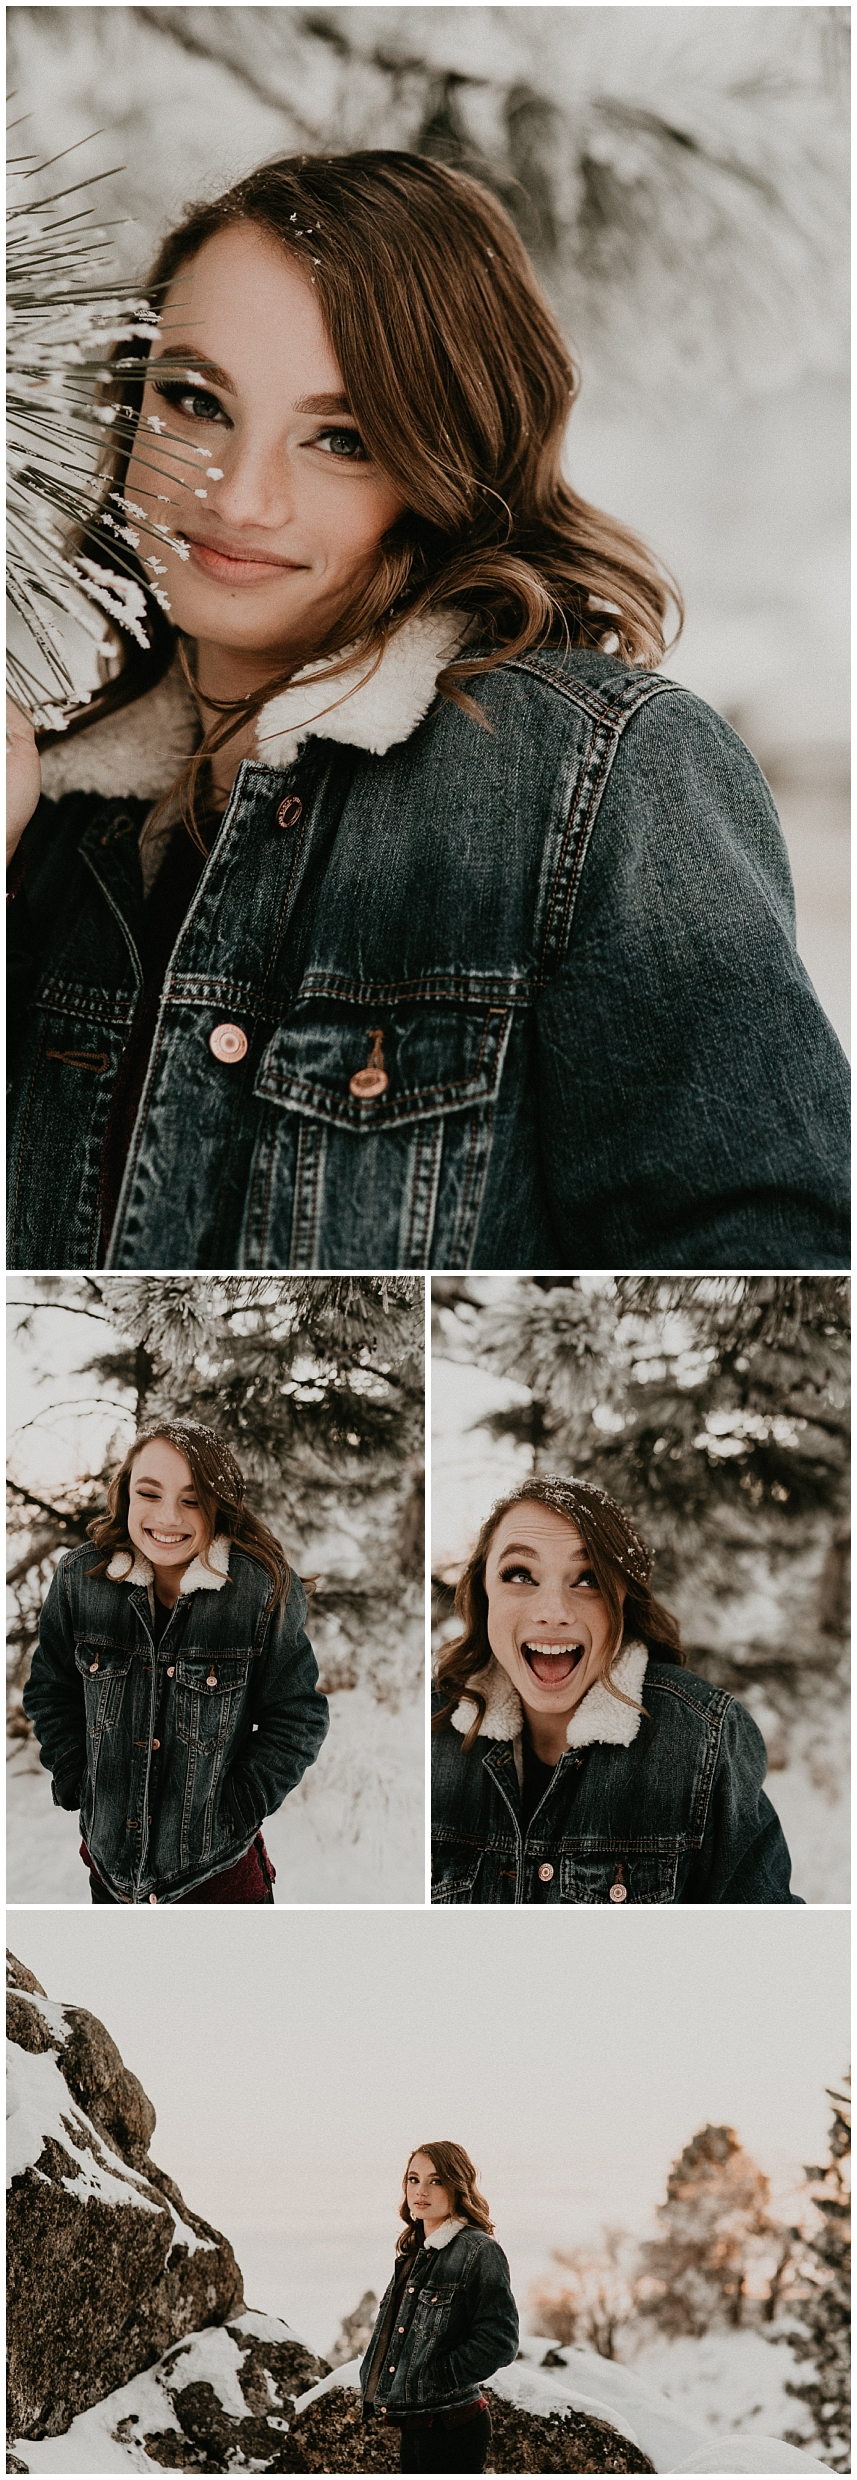 Boise Senior Photographer Meridian Photographers Makayla Madden Senior Pictures Bogus Basin Mountain Ski Resort Worship Faith Adventure Mountains Portraits Winter Senior Session Snow